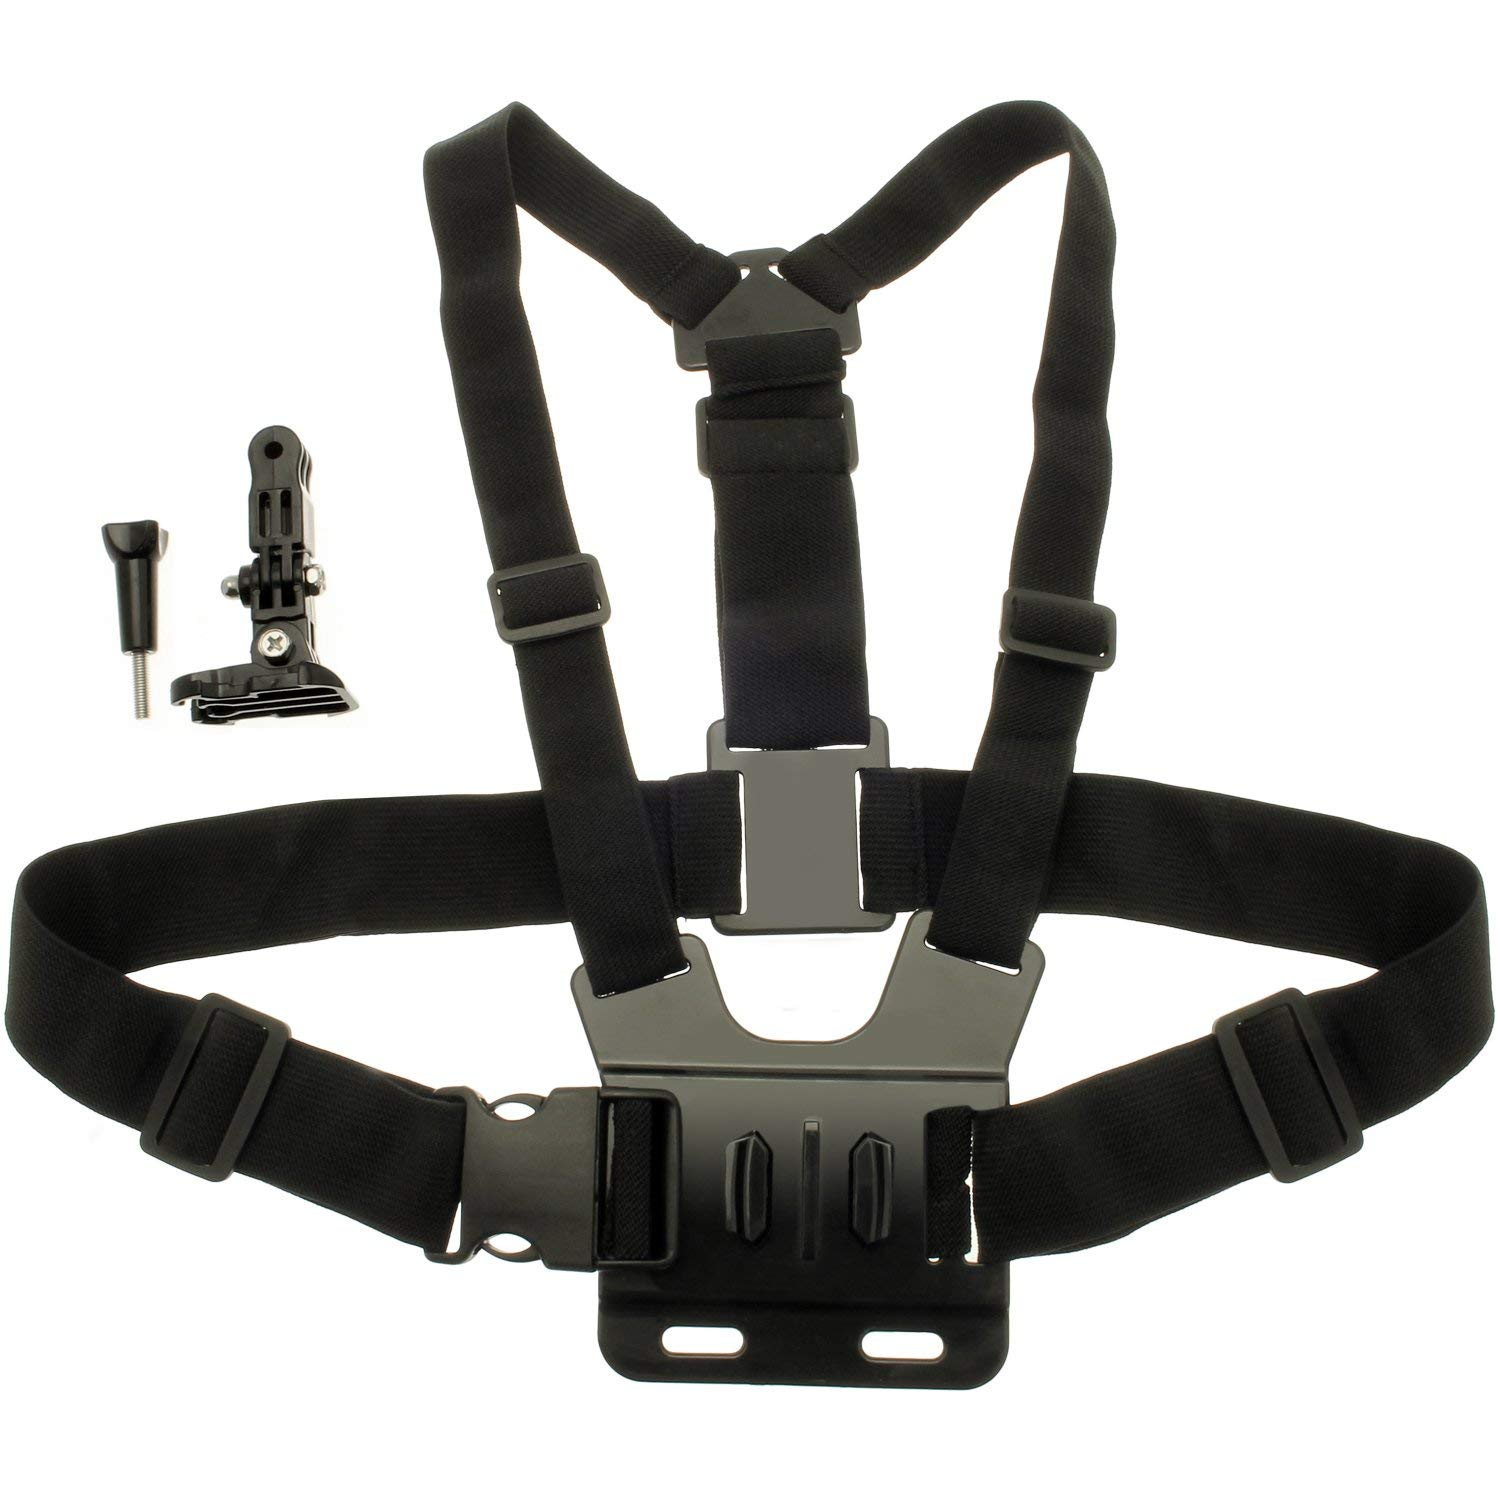 DURAGADGET Adjustable Chest Harness Mount with Quick Release Buckle Compatible with Camsports Evo 1080 Pro